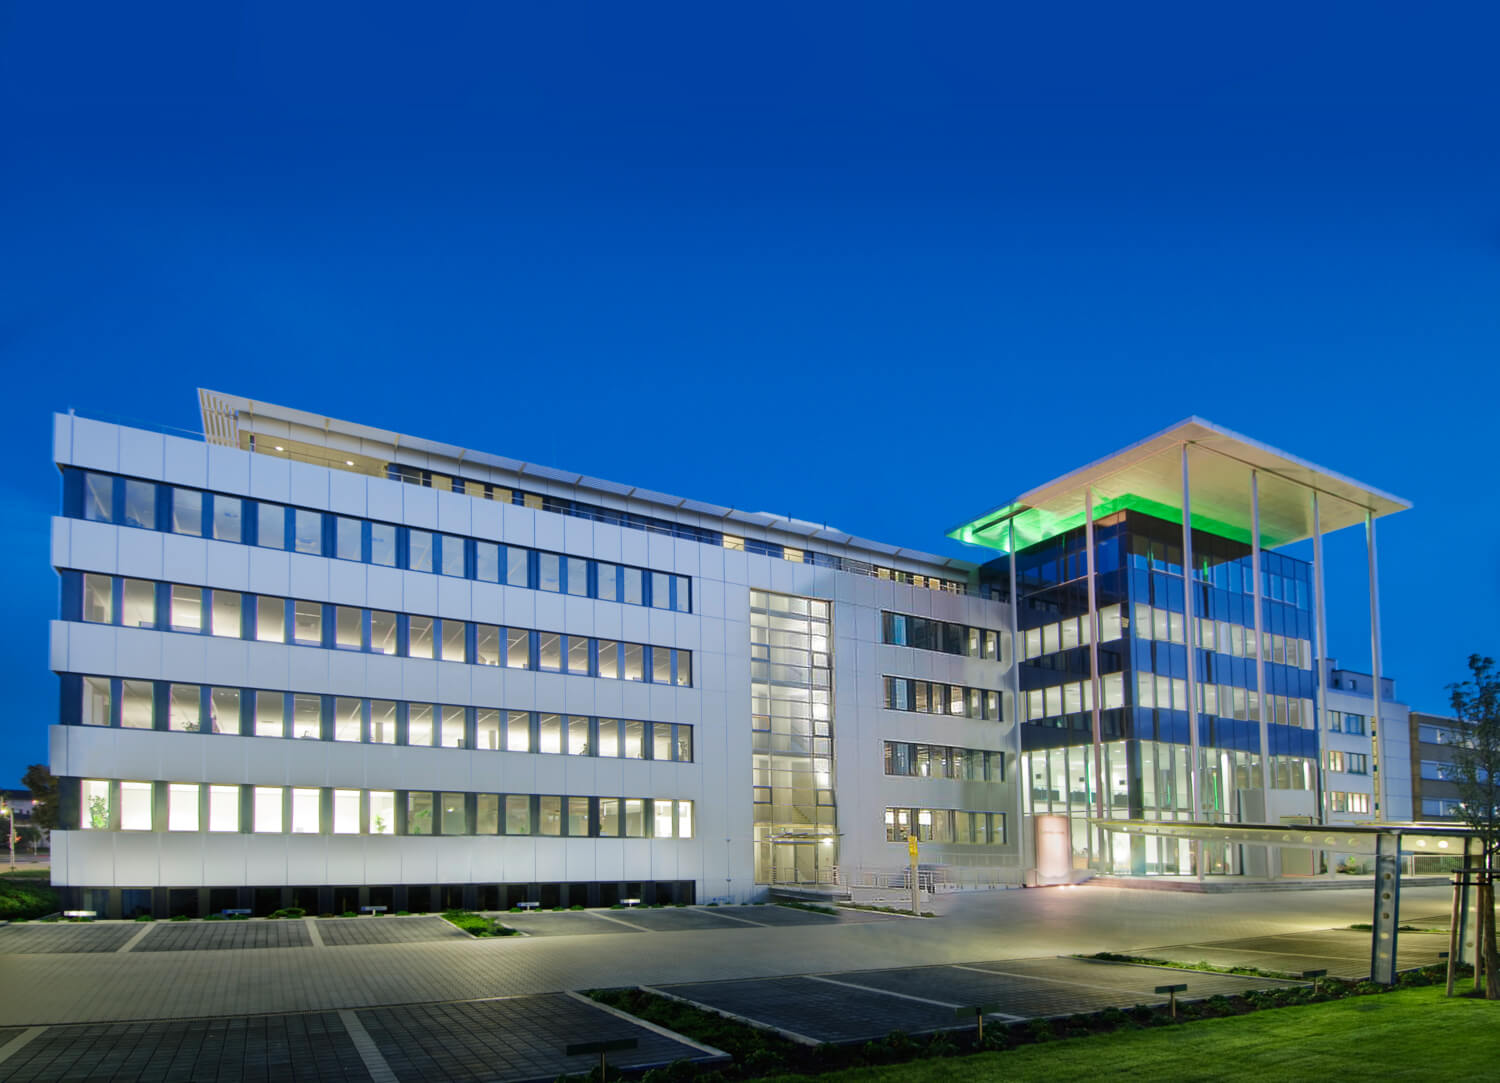 Company headquarter of Pepperl+Fuchs in Mannheim